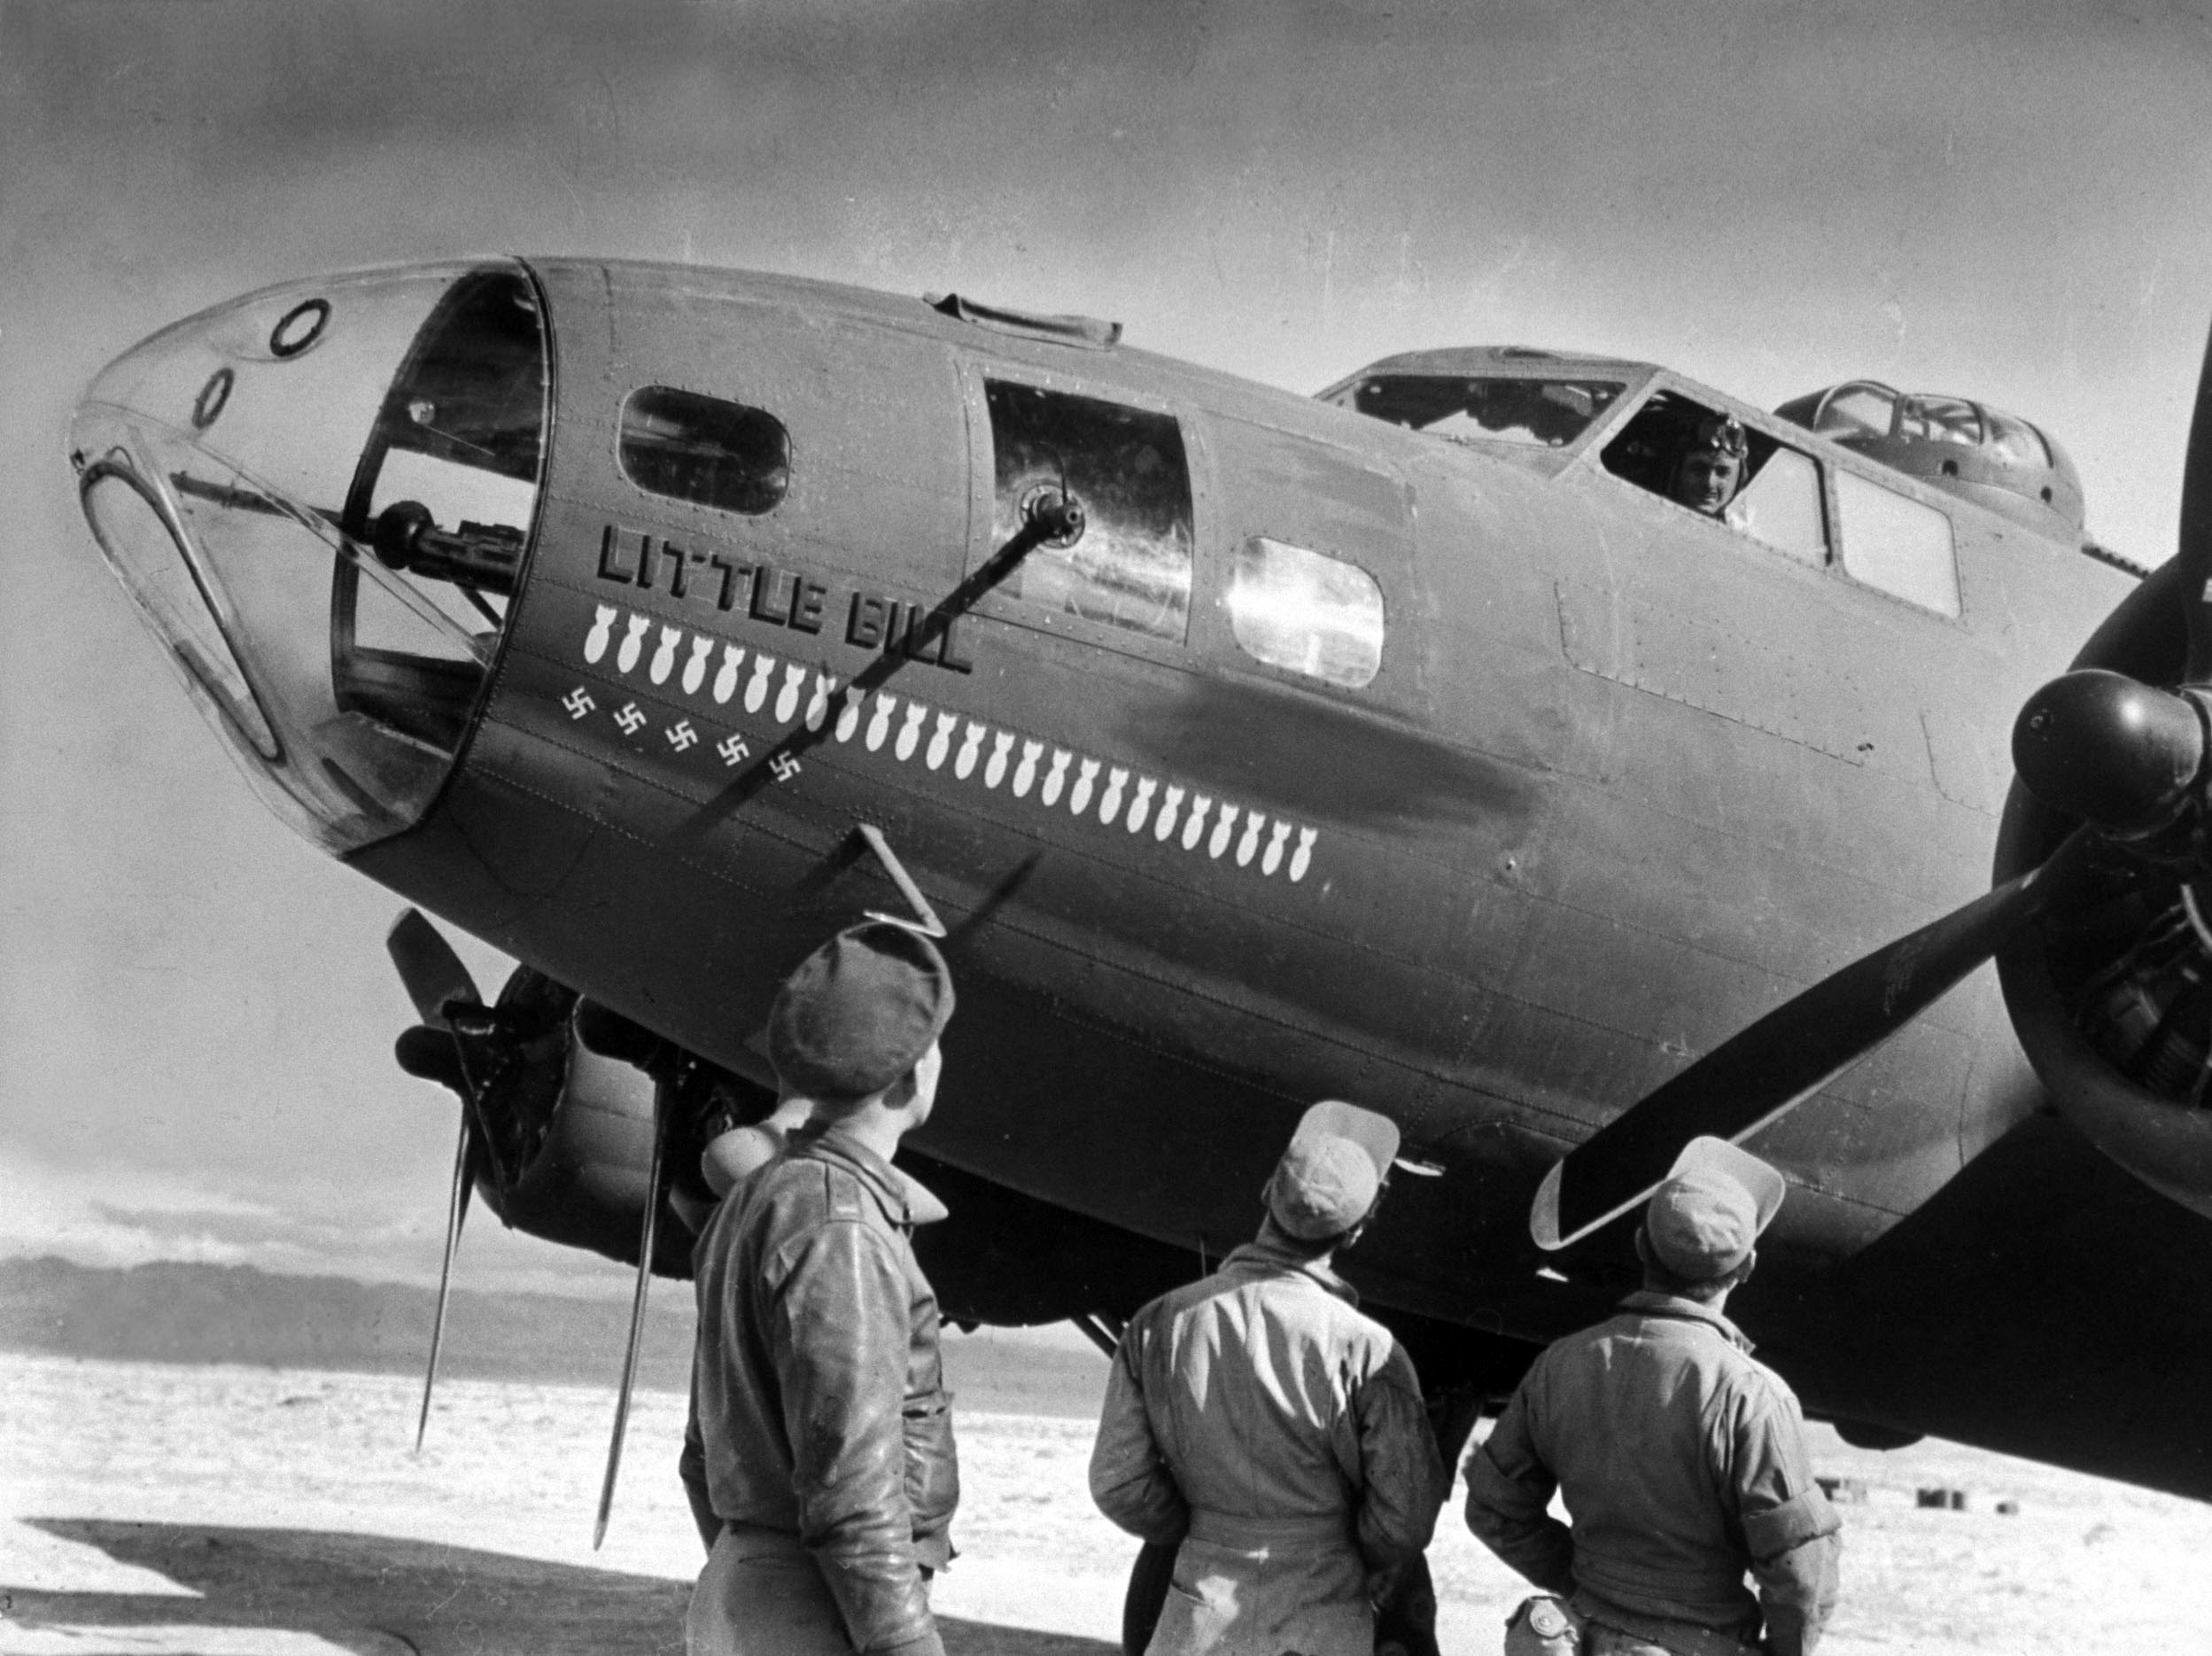 """<b>Caption from LIFE.</b> """"Little Bill"""" lead plane of lead element, prepares to take off. Bombs painted on nose denote a mission in which it participated; swastikas, number of German planes shot down."""